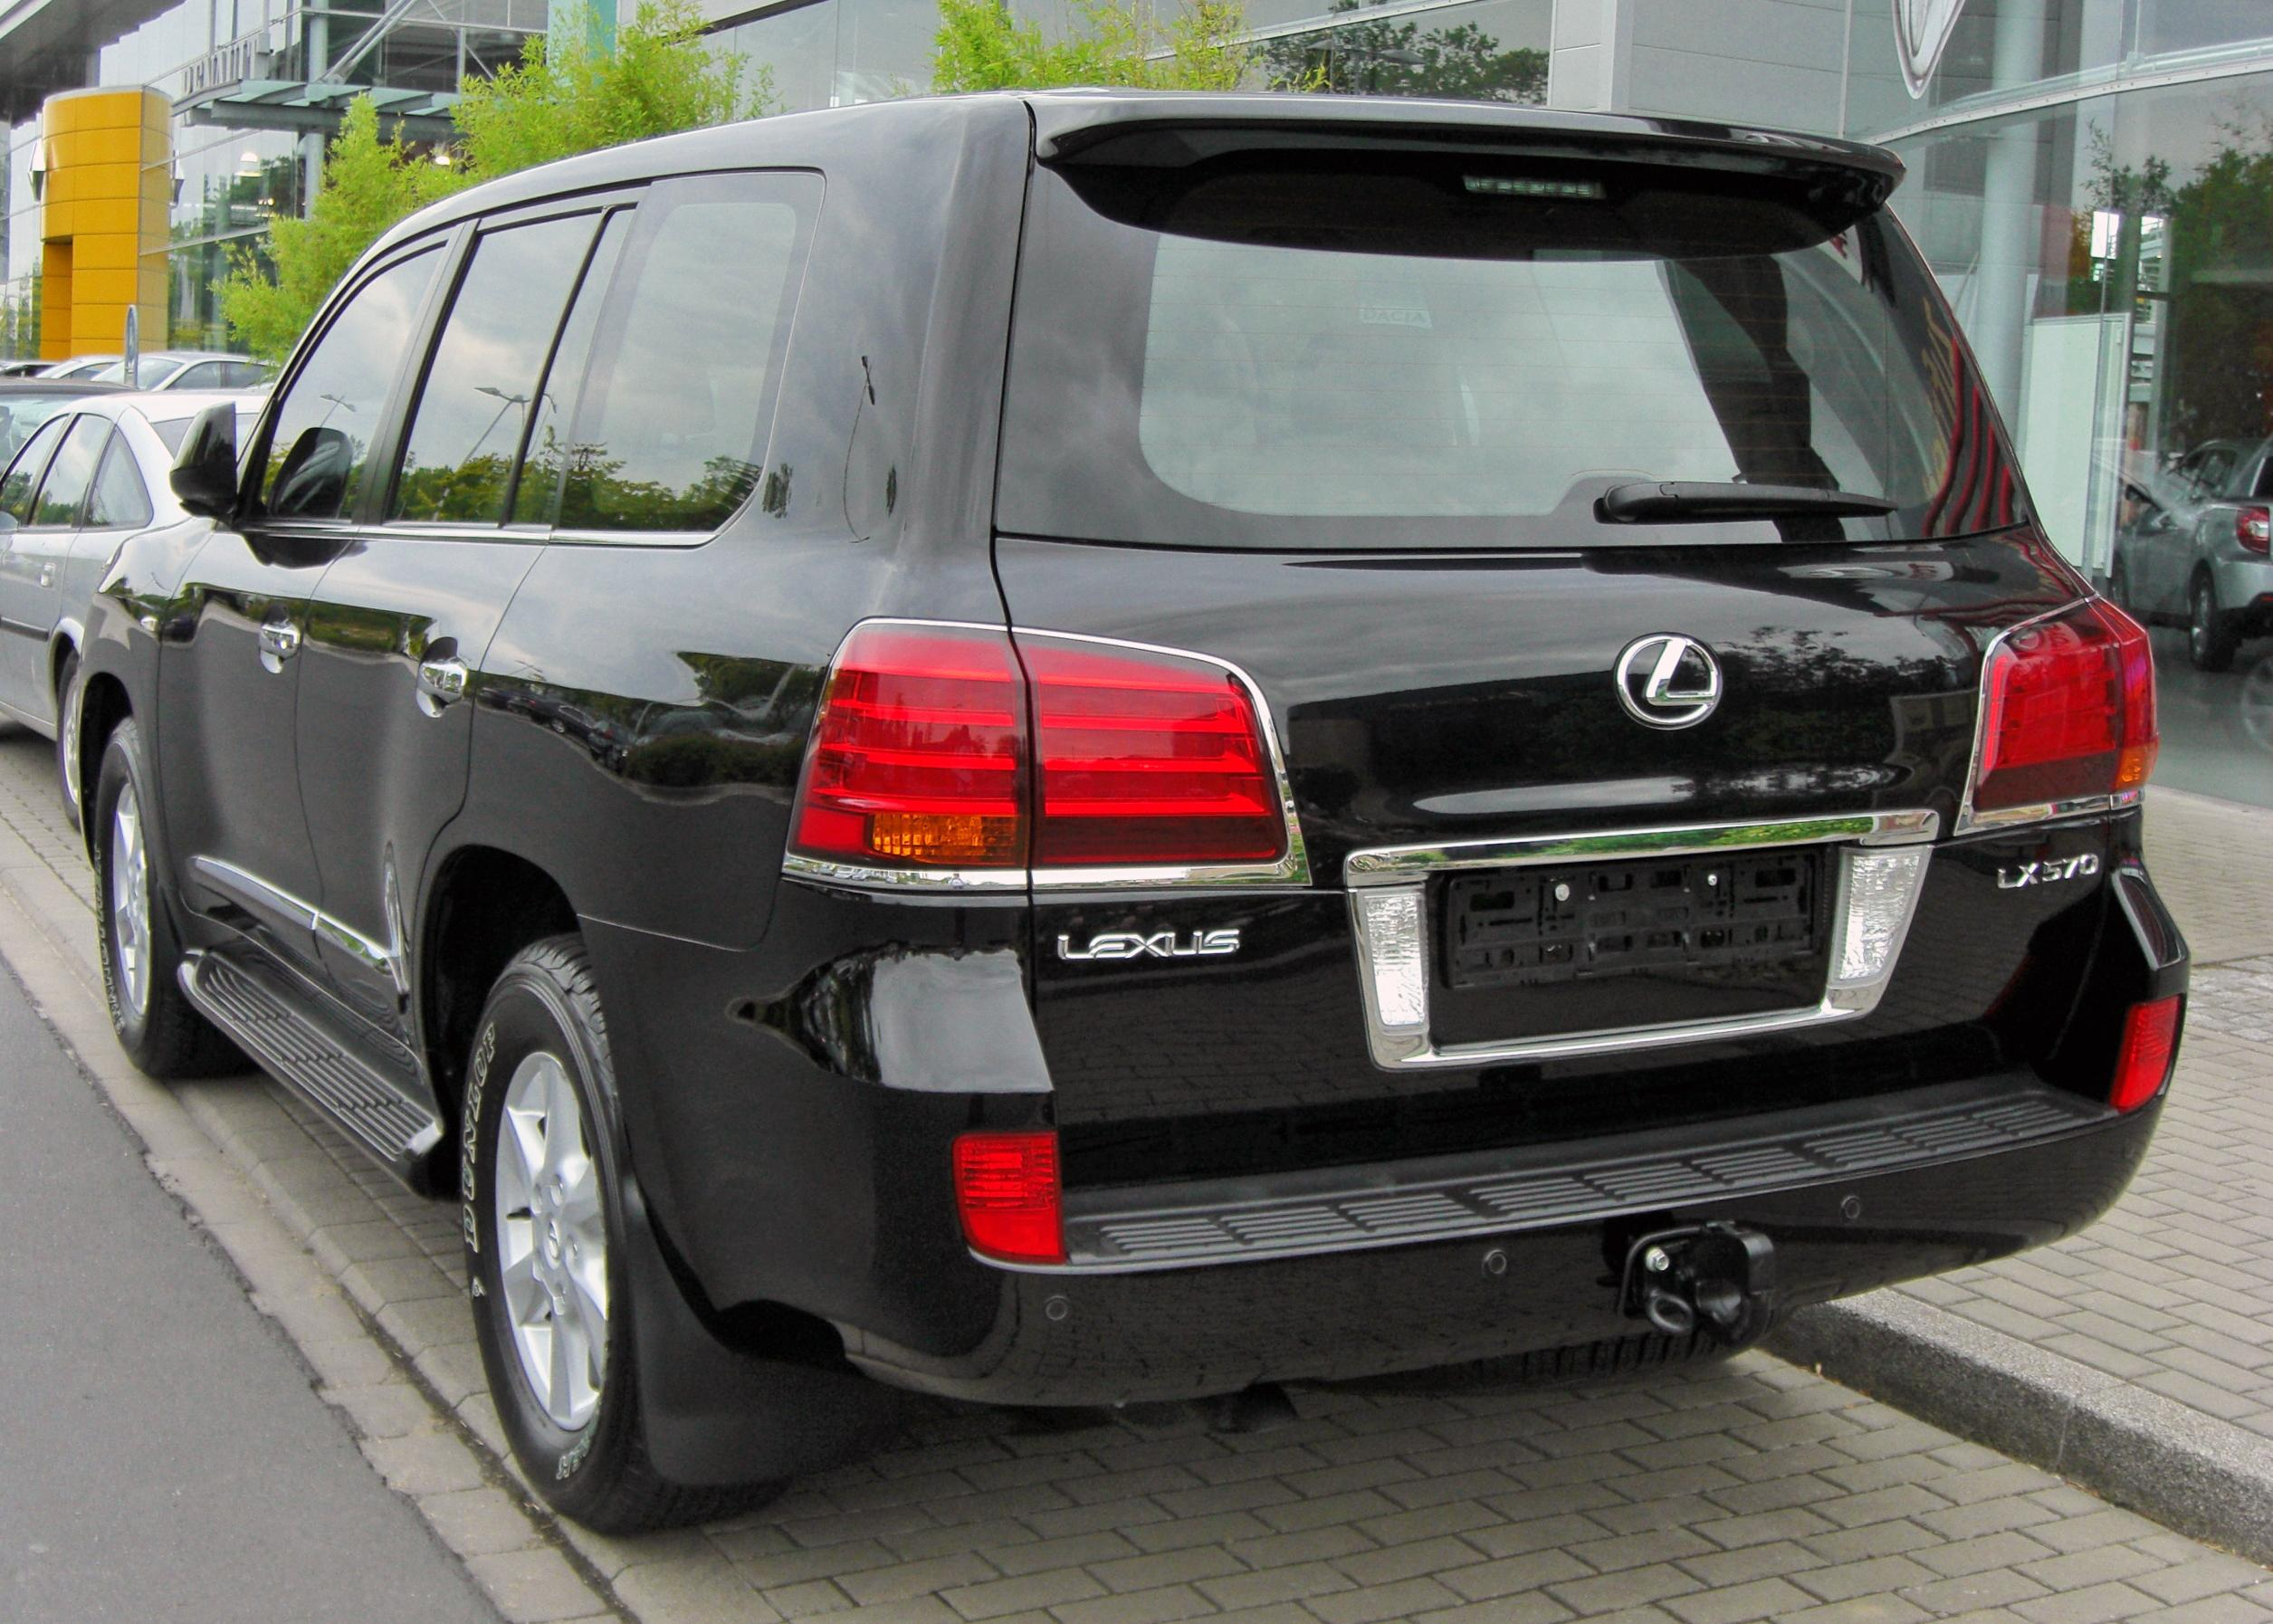 File Lexus Lx 570 20090620 Rear Jpg